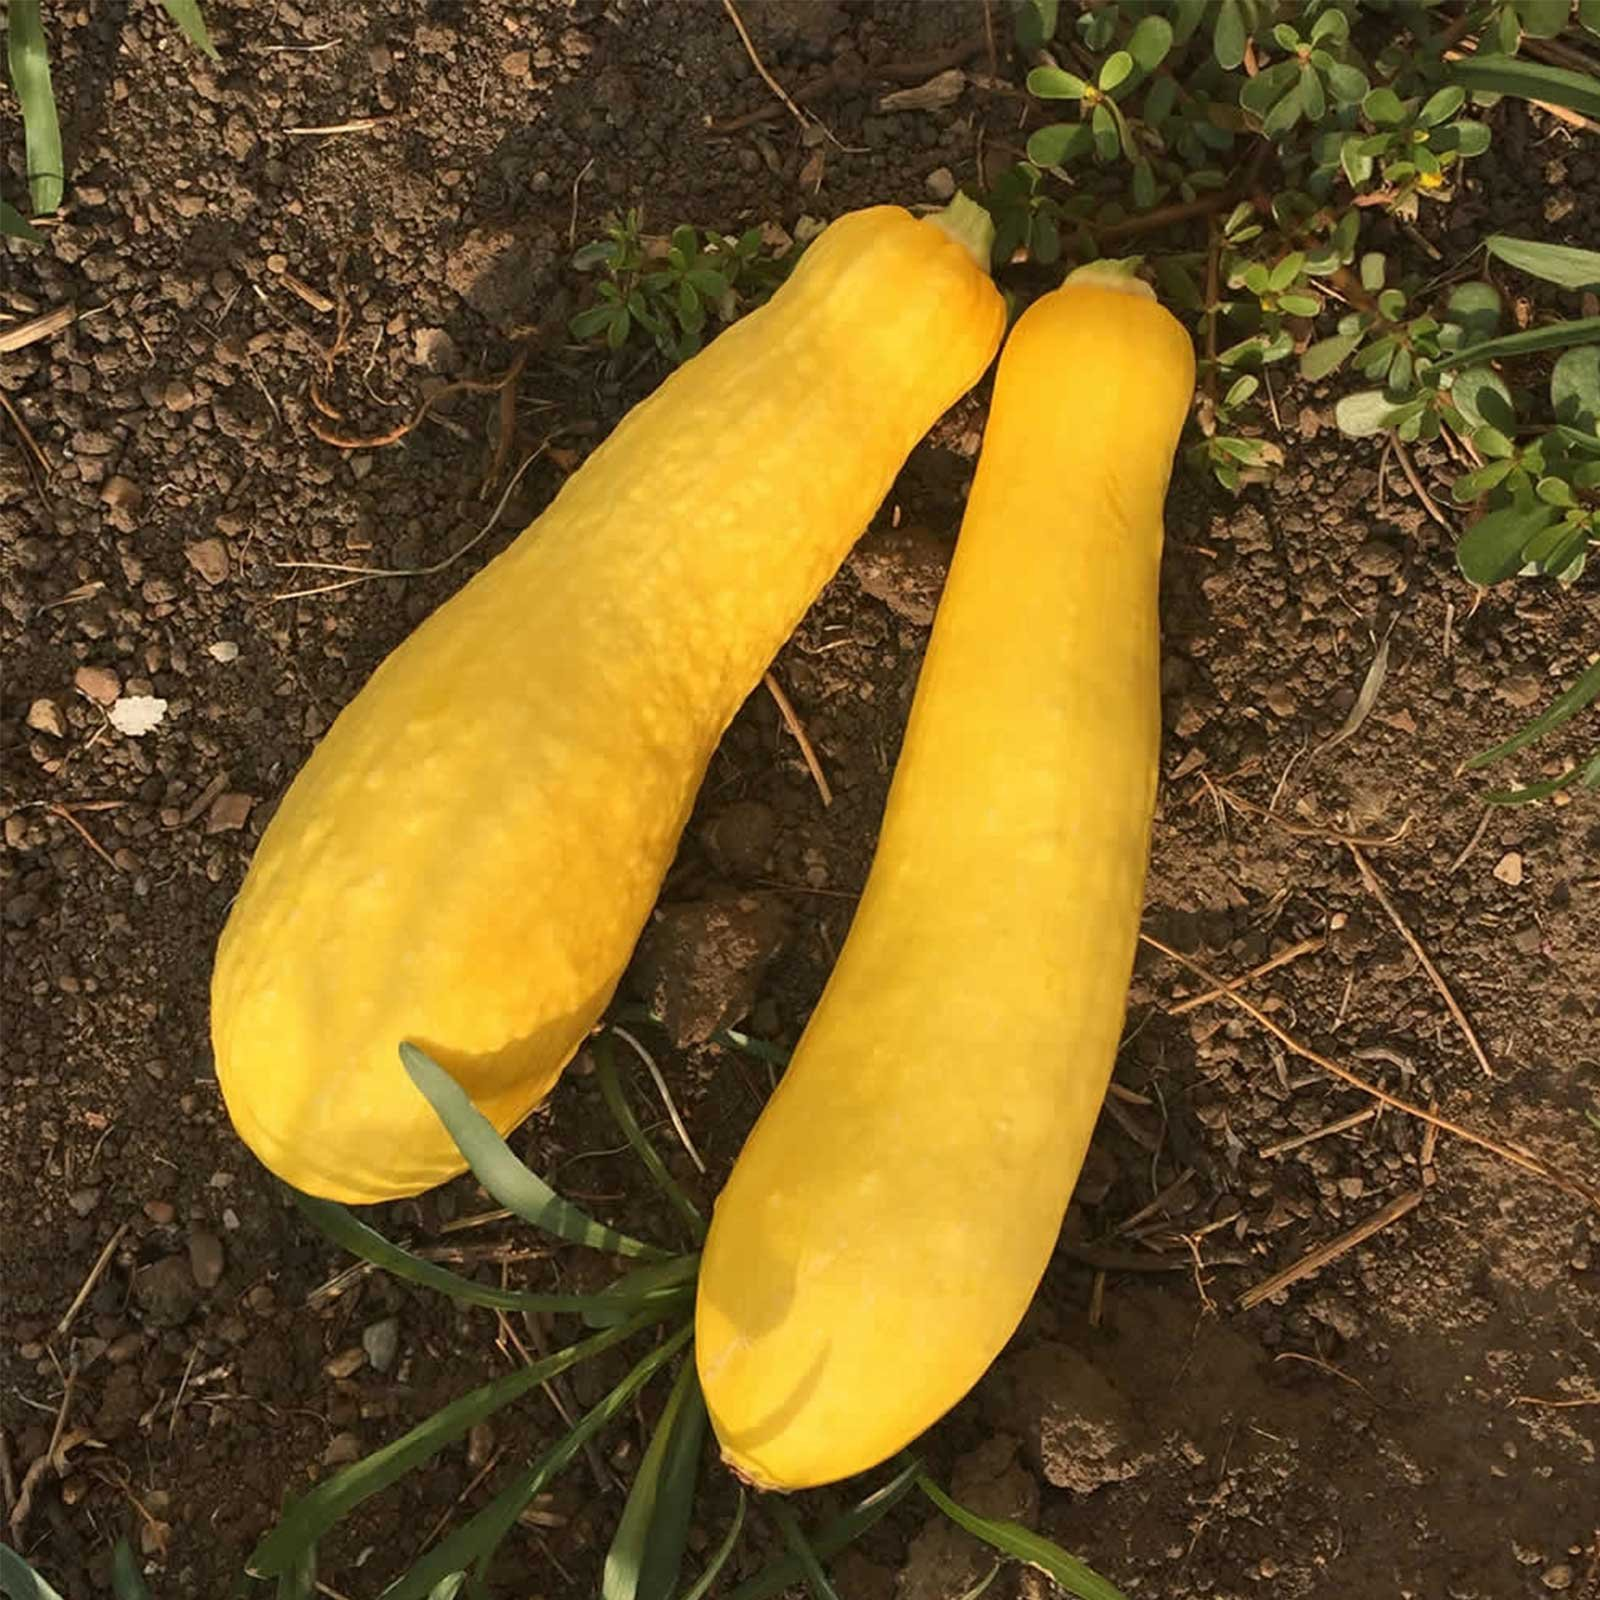 Early Prolific Straightneck Summer Squash Garden Seeds - 5 Lbs Bulk - Heirloom, Non-GMO - Vegetable Gardening Seed - Straight Neck Yellow Squash by Mountain Valley Seed Company